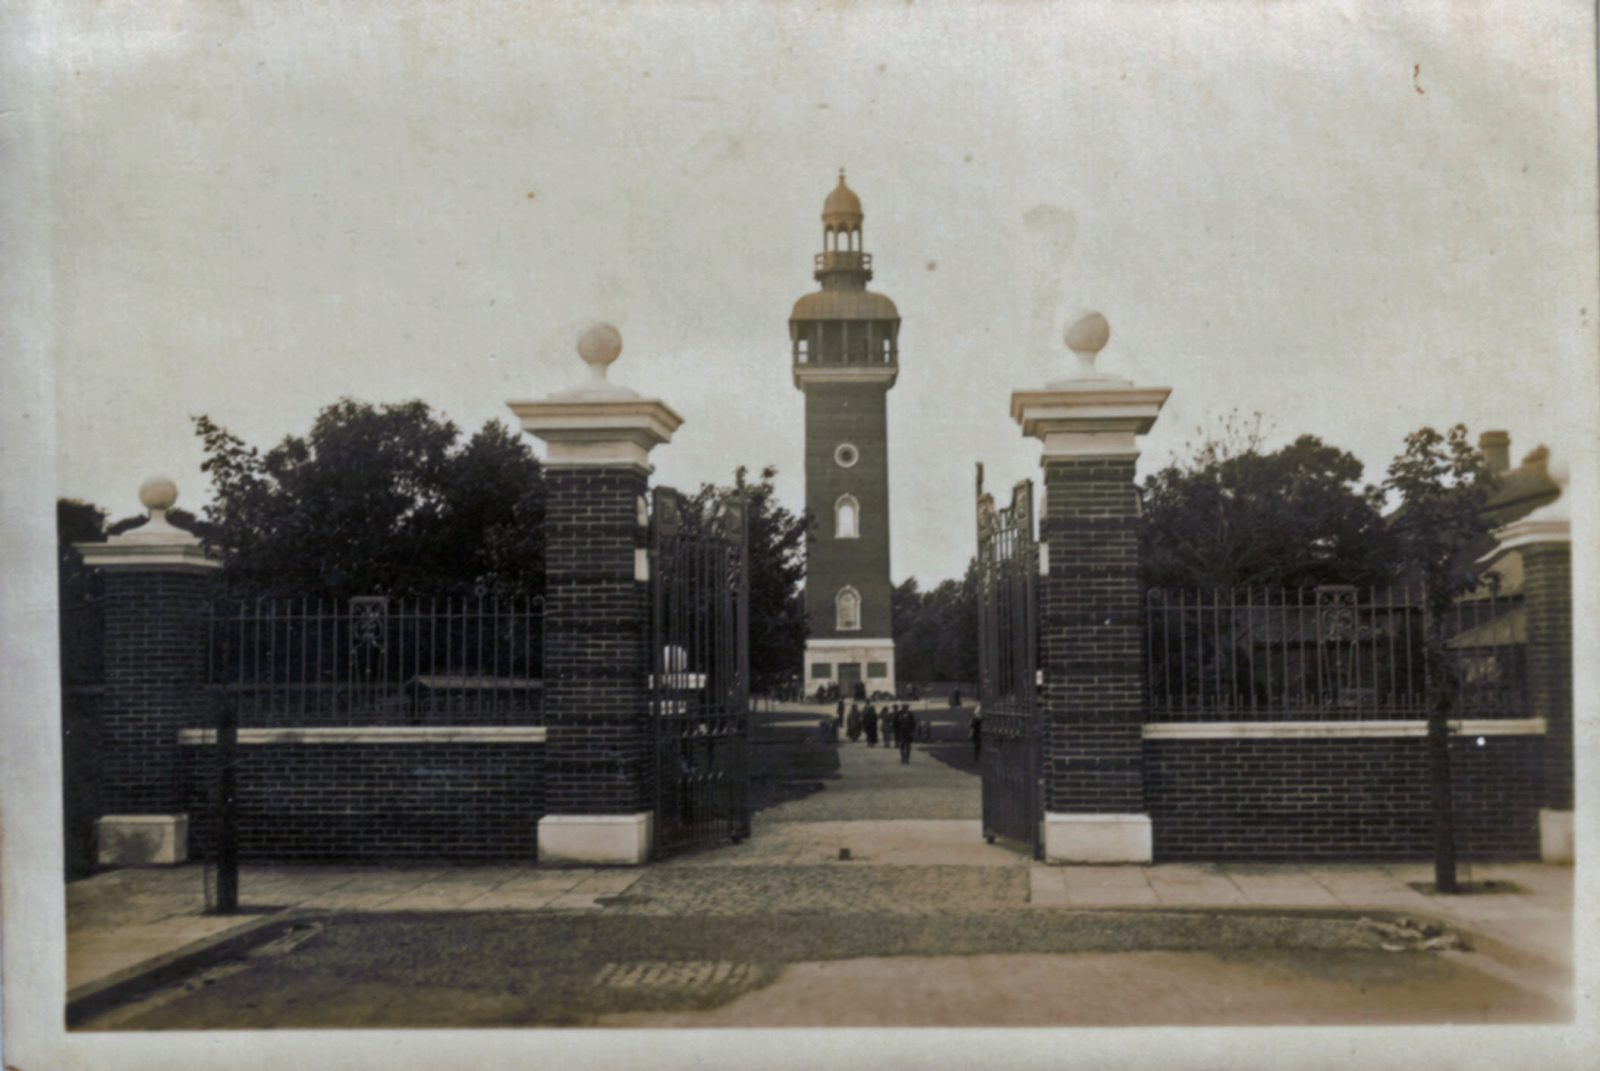 Queens Park, Loughborough. 1921-1940: Entrance Gates and Carillon Tower. (File:1140)